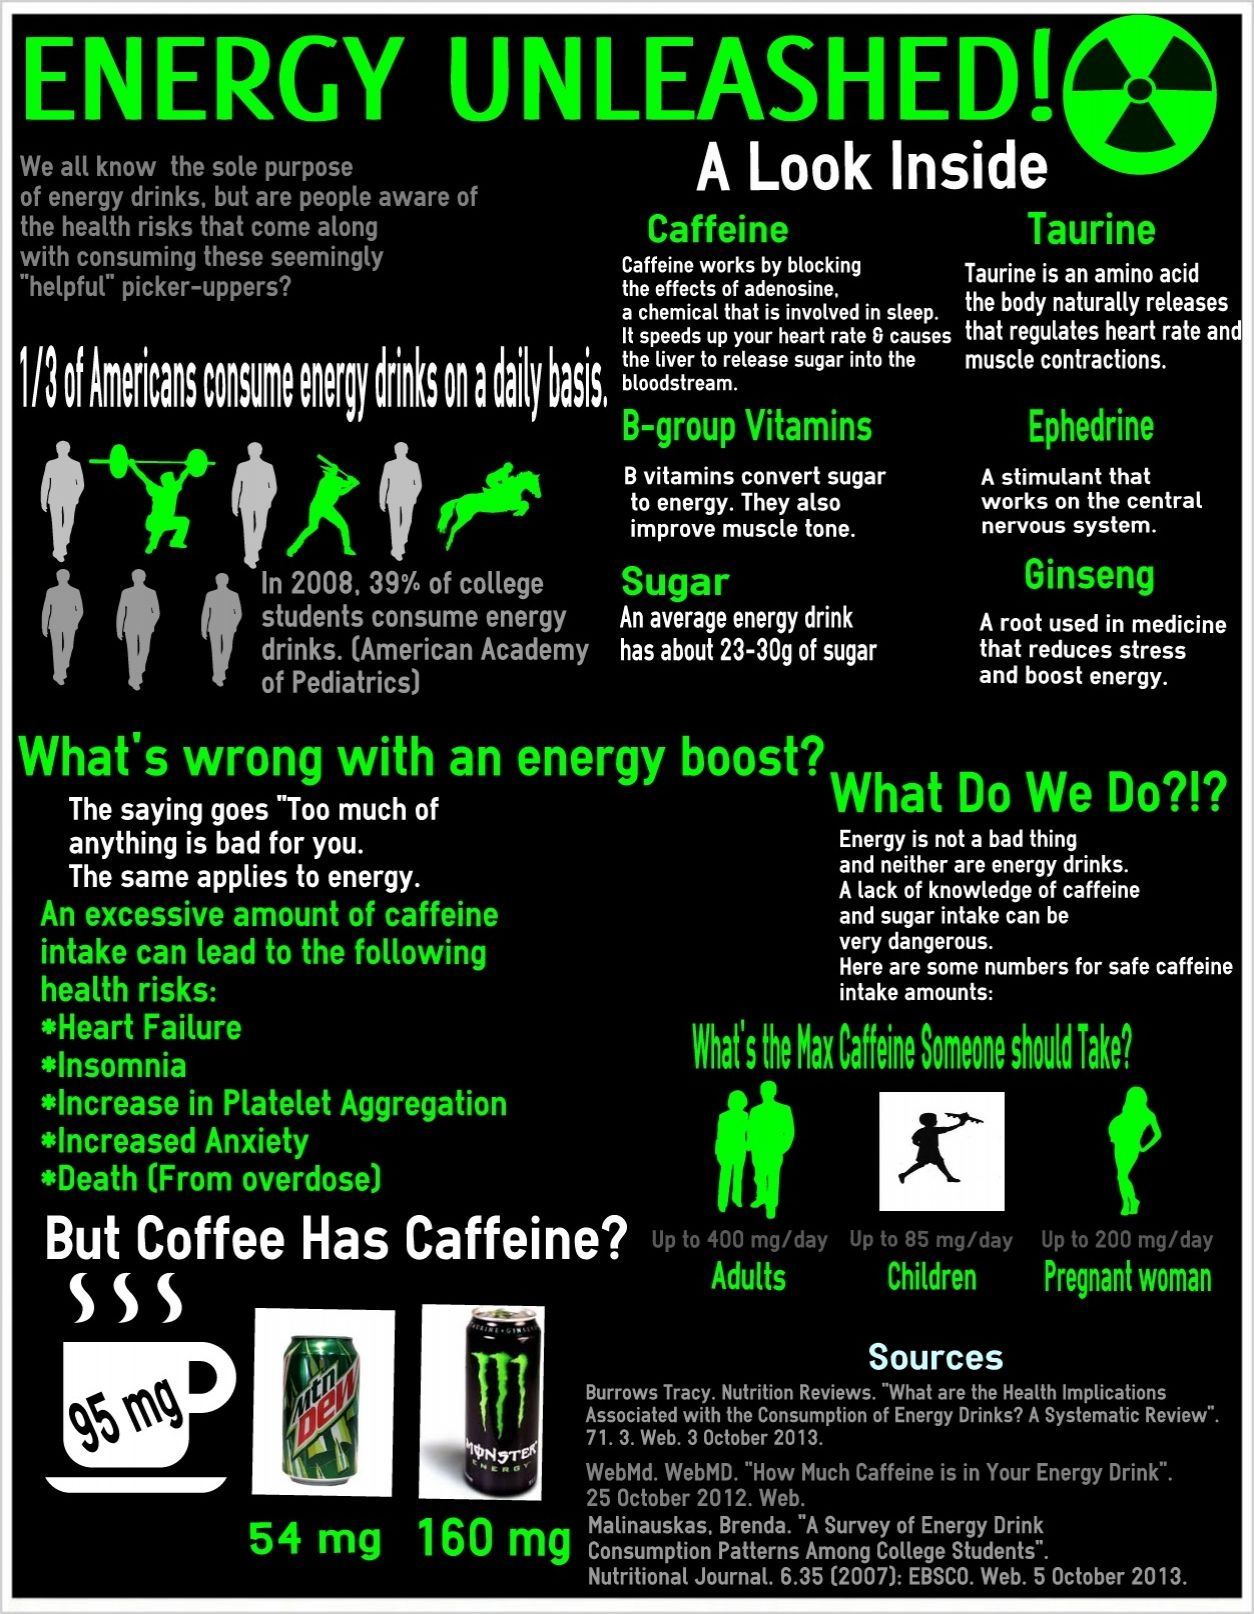 Pin by Easel.ly on New Templates! | Energy drinks, Amino